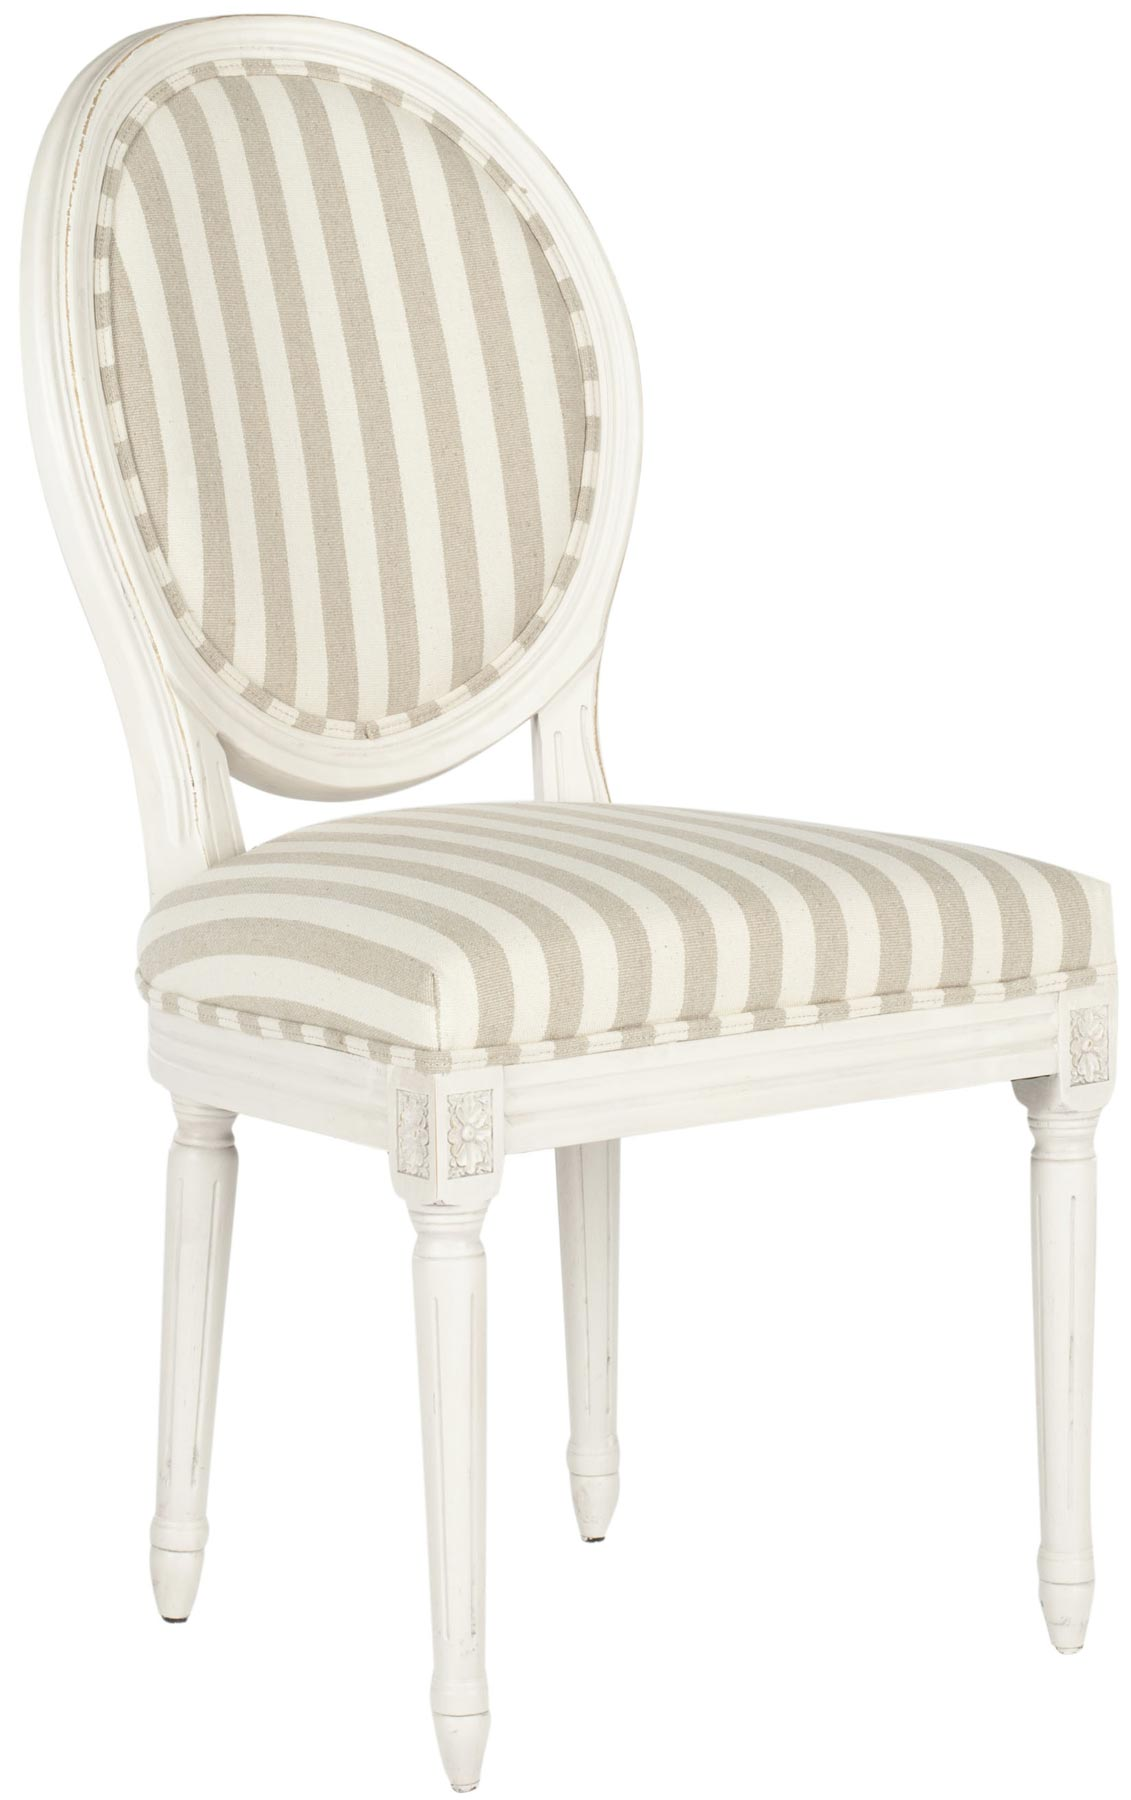 paris side chair toddler table and chairs wooden safavieh mcr4517e oval stripe set of